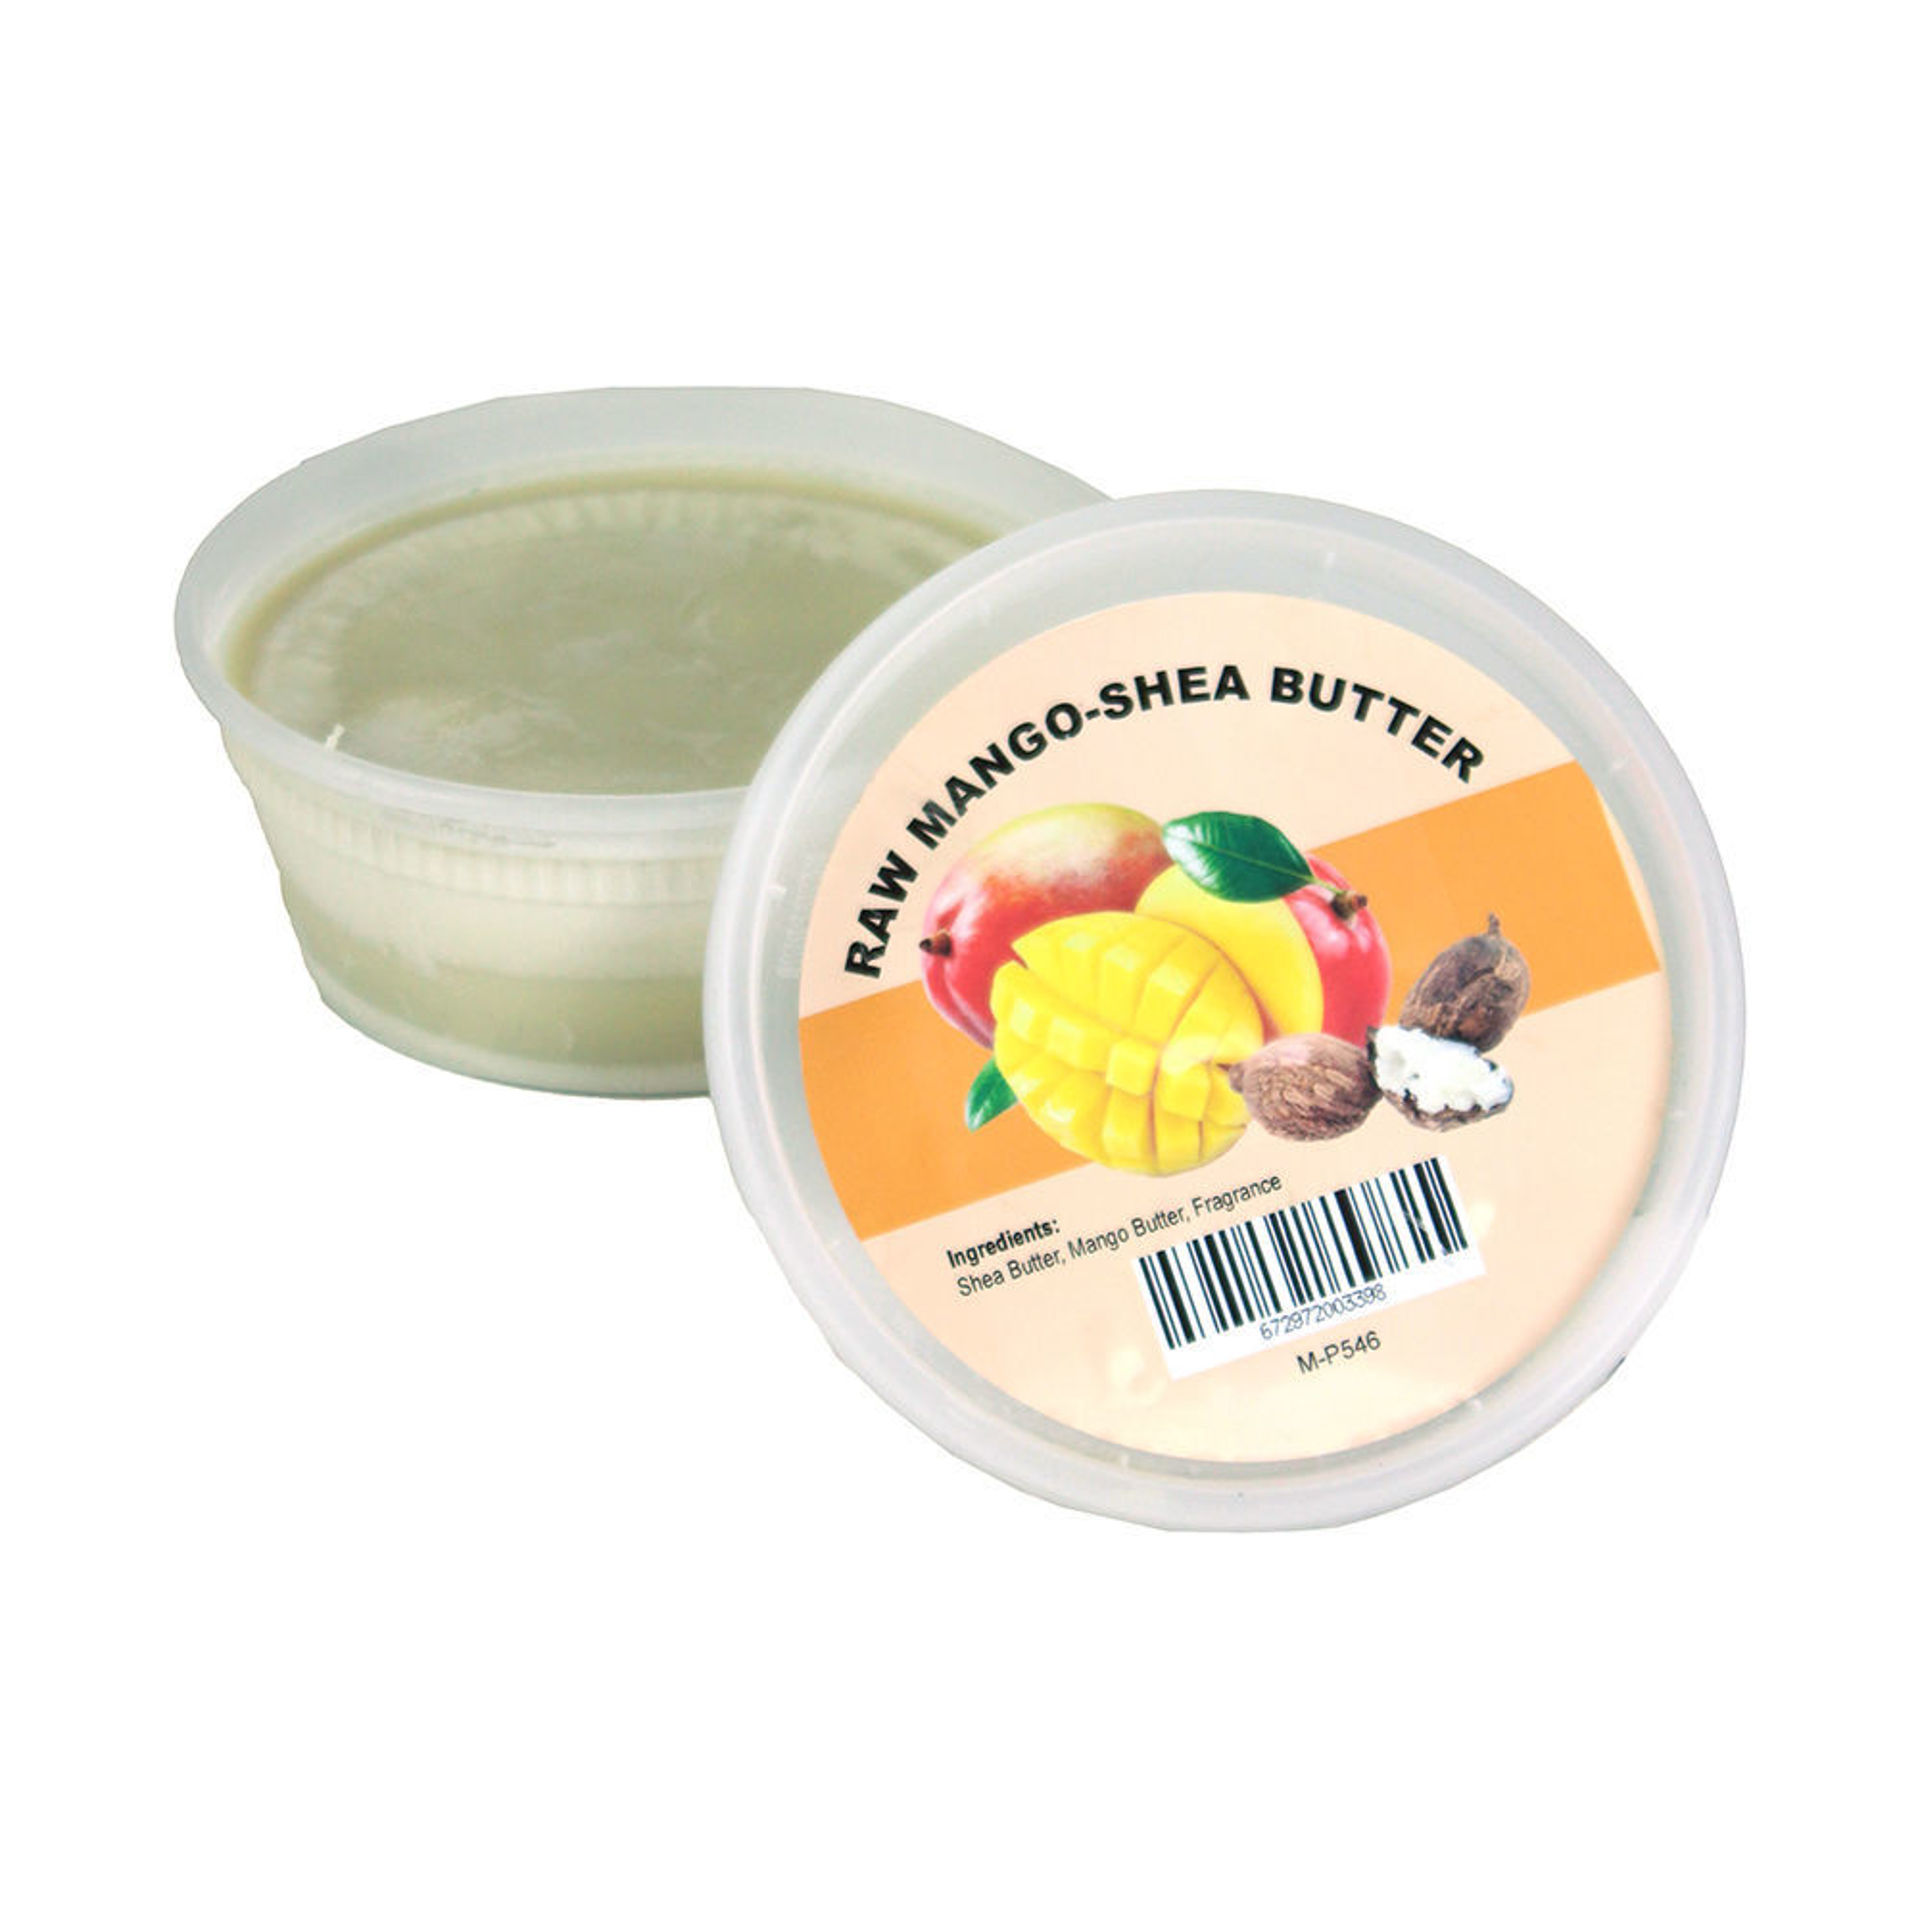 Picture of Raw Mango-Shea Butter - SM